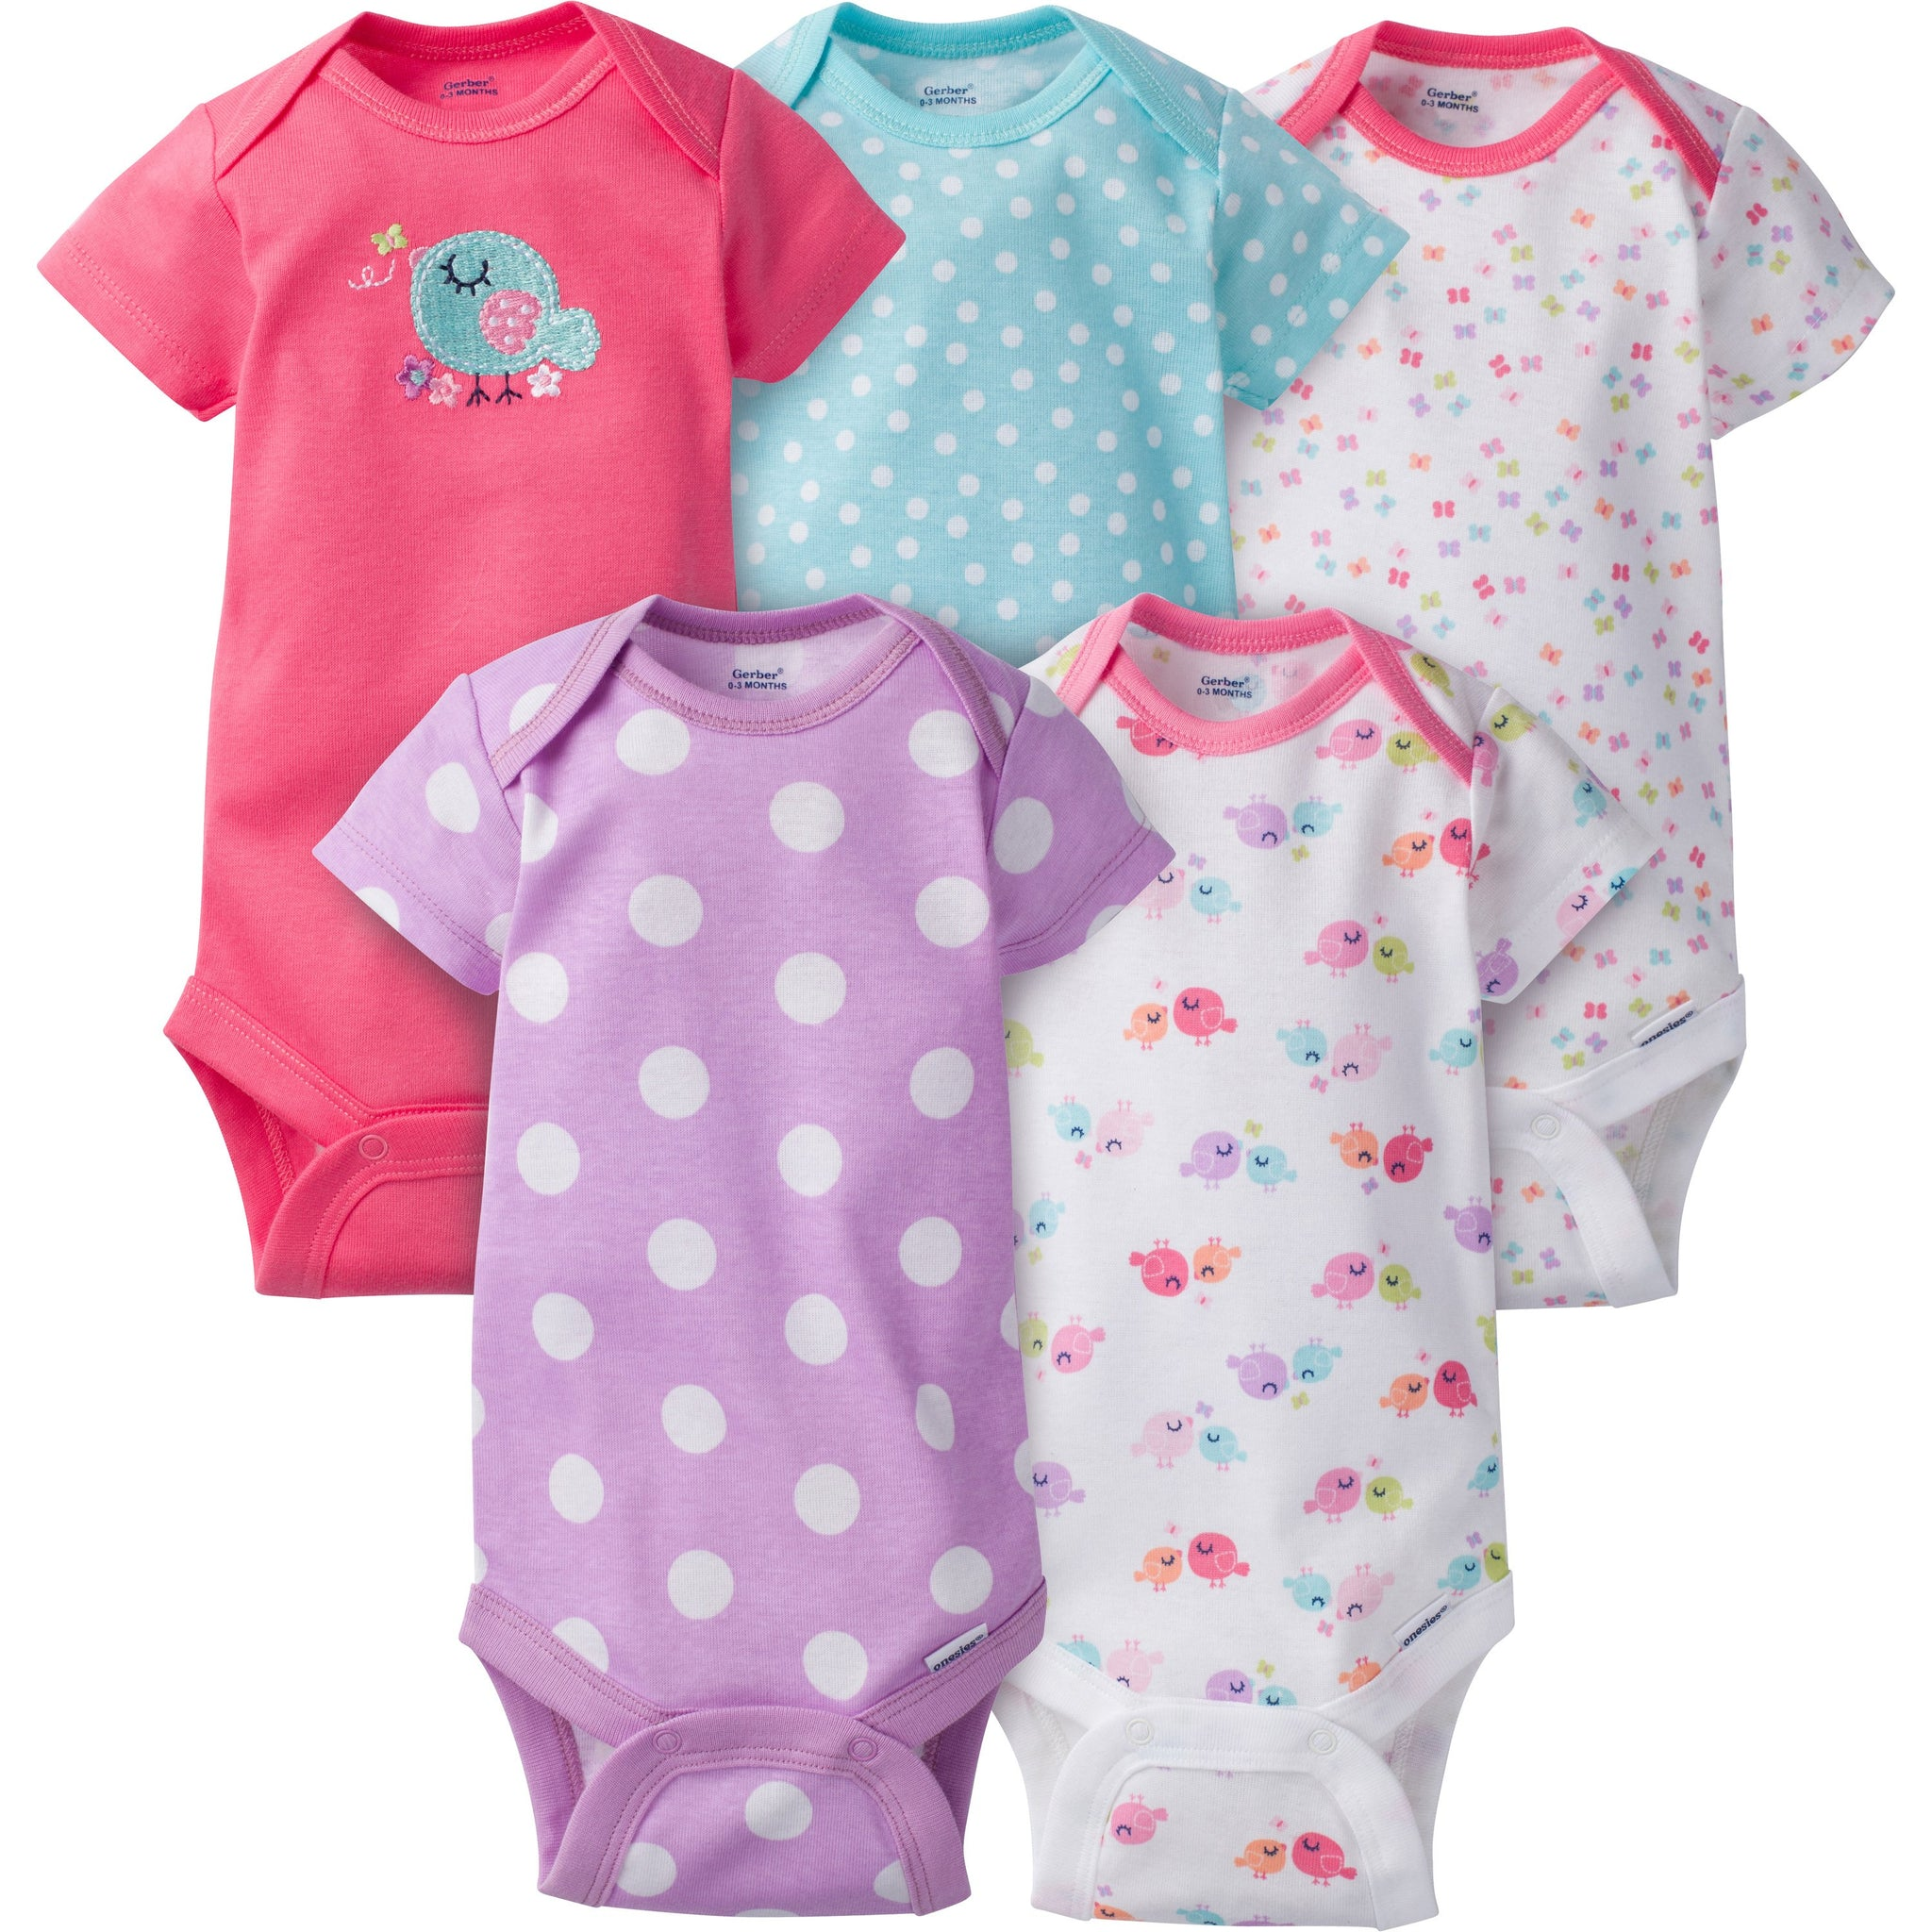 19-Piece Girls Essentials Gift Set - Birdie-Gerber Childrenswear